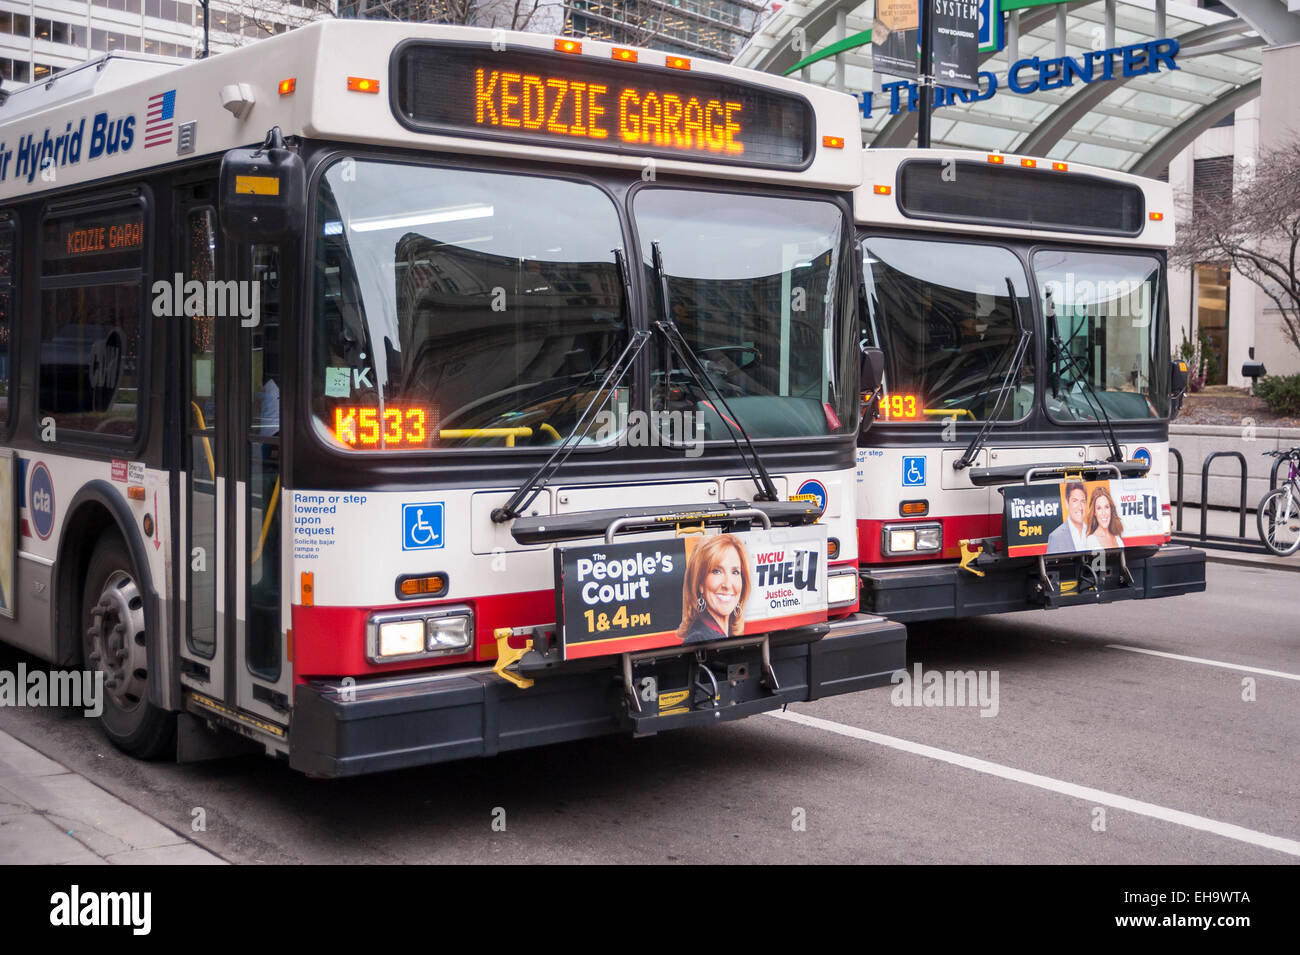 Cta buses stock photos cta buses stock images alamy chicago usa a pair of chicago transit authority cta hybrid buses outside publicscrutiny Images